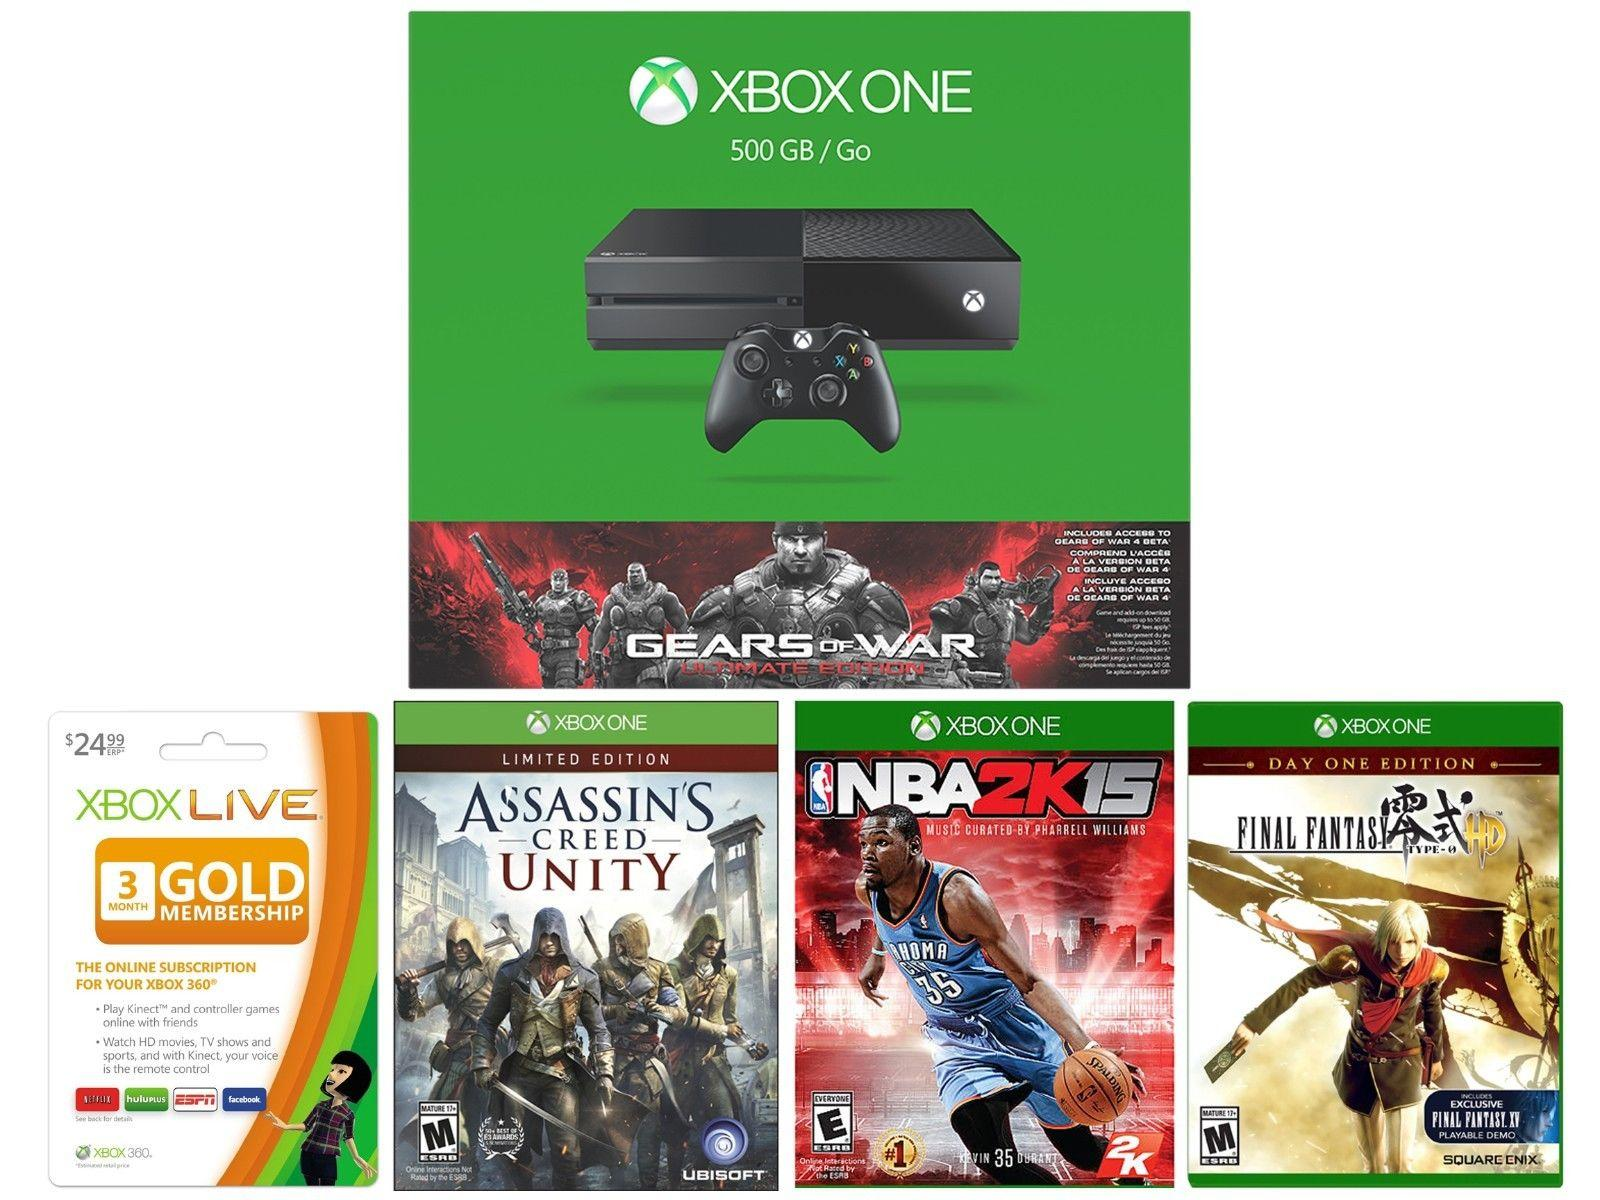 Microsoft Xbox One 500GB Console + Assassins + Final Fantasy + NBA 2K15 + 3Month Card